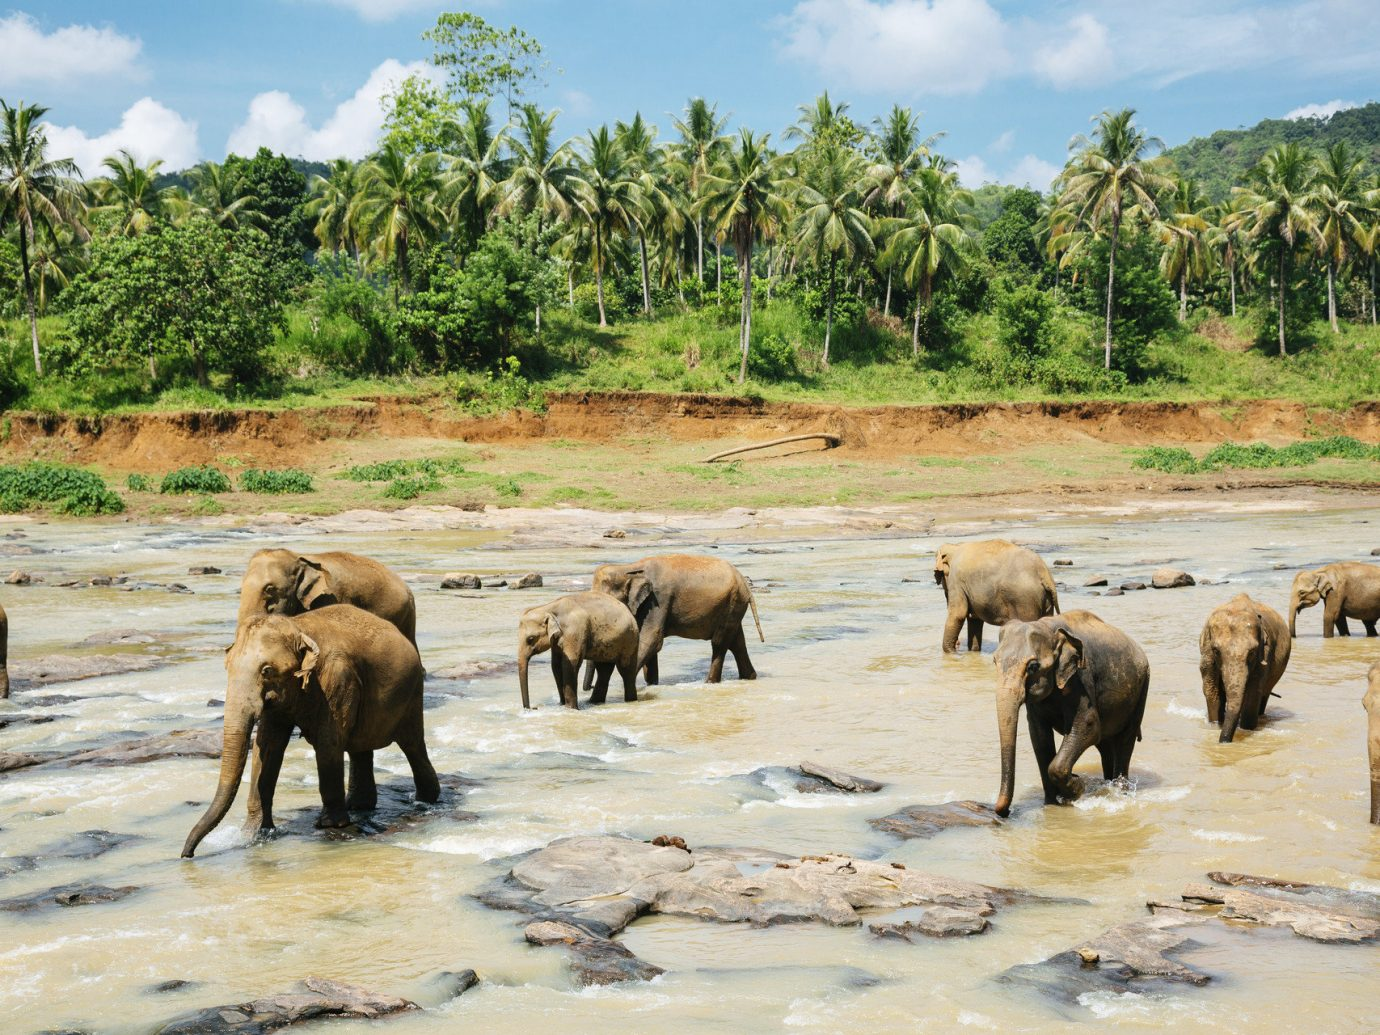 Budget Travel Tips Trip Ideas tree elephant outdoor sky herd indian elephant mammal group River animal Wildlife elephants and mammoths fauna walking savanna Safari Family african elephant Adventure plain gathered